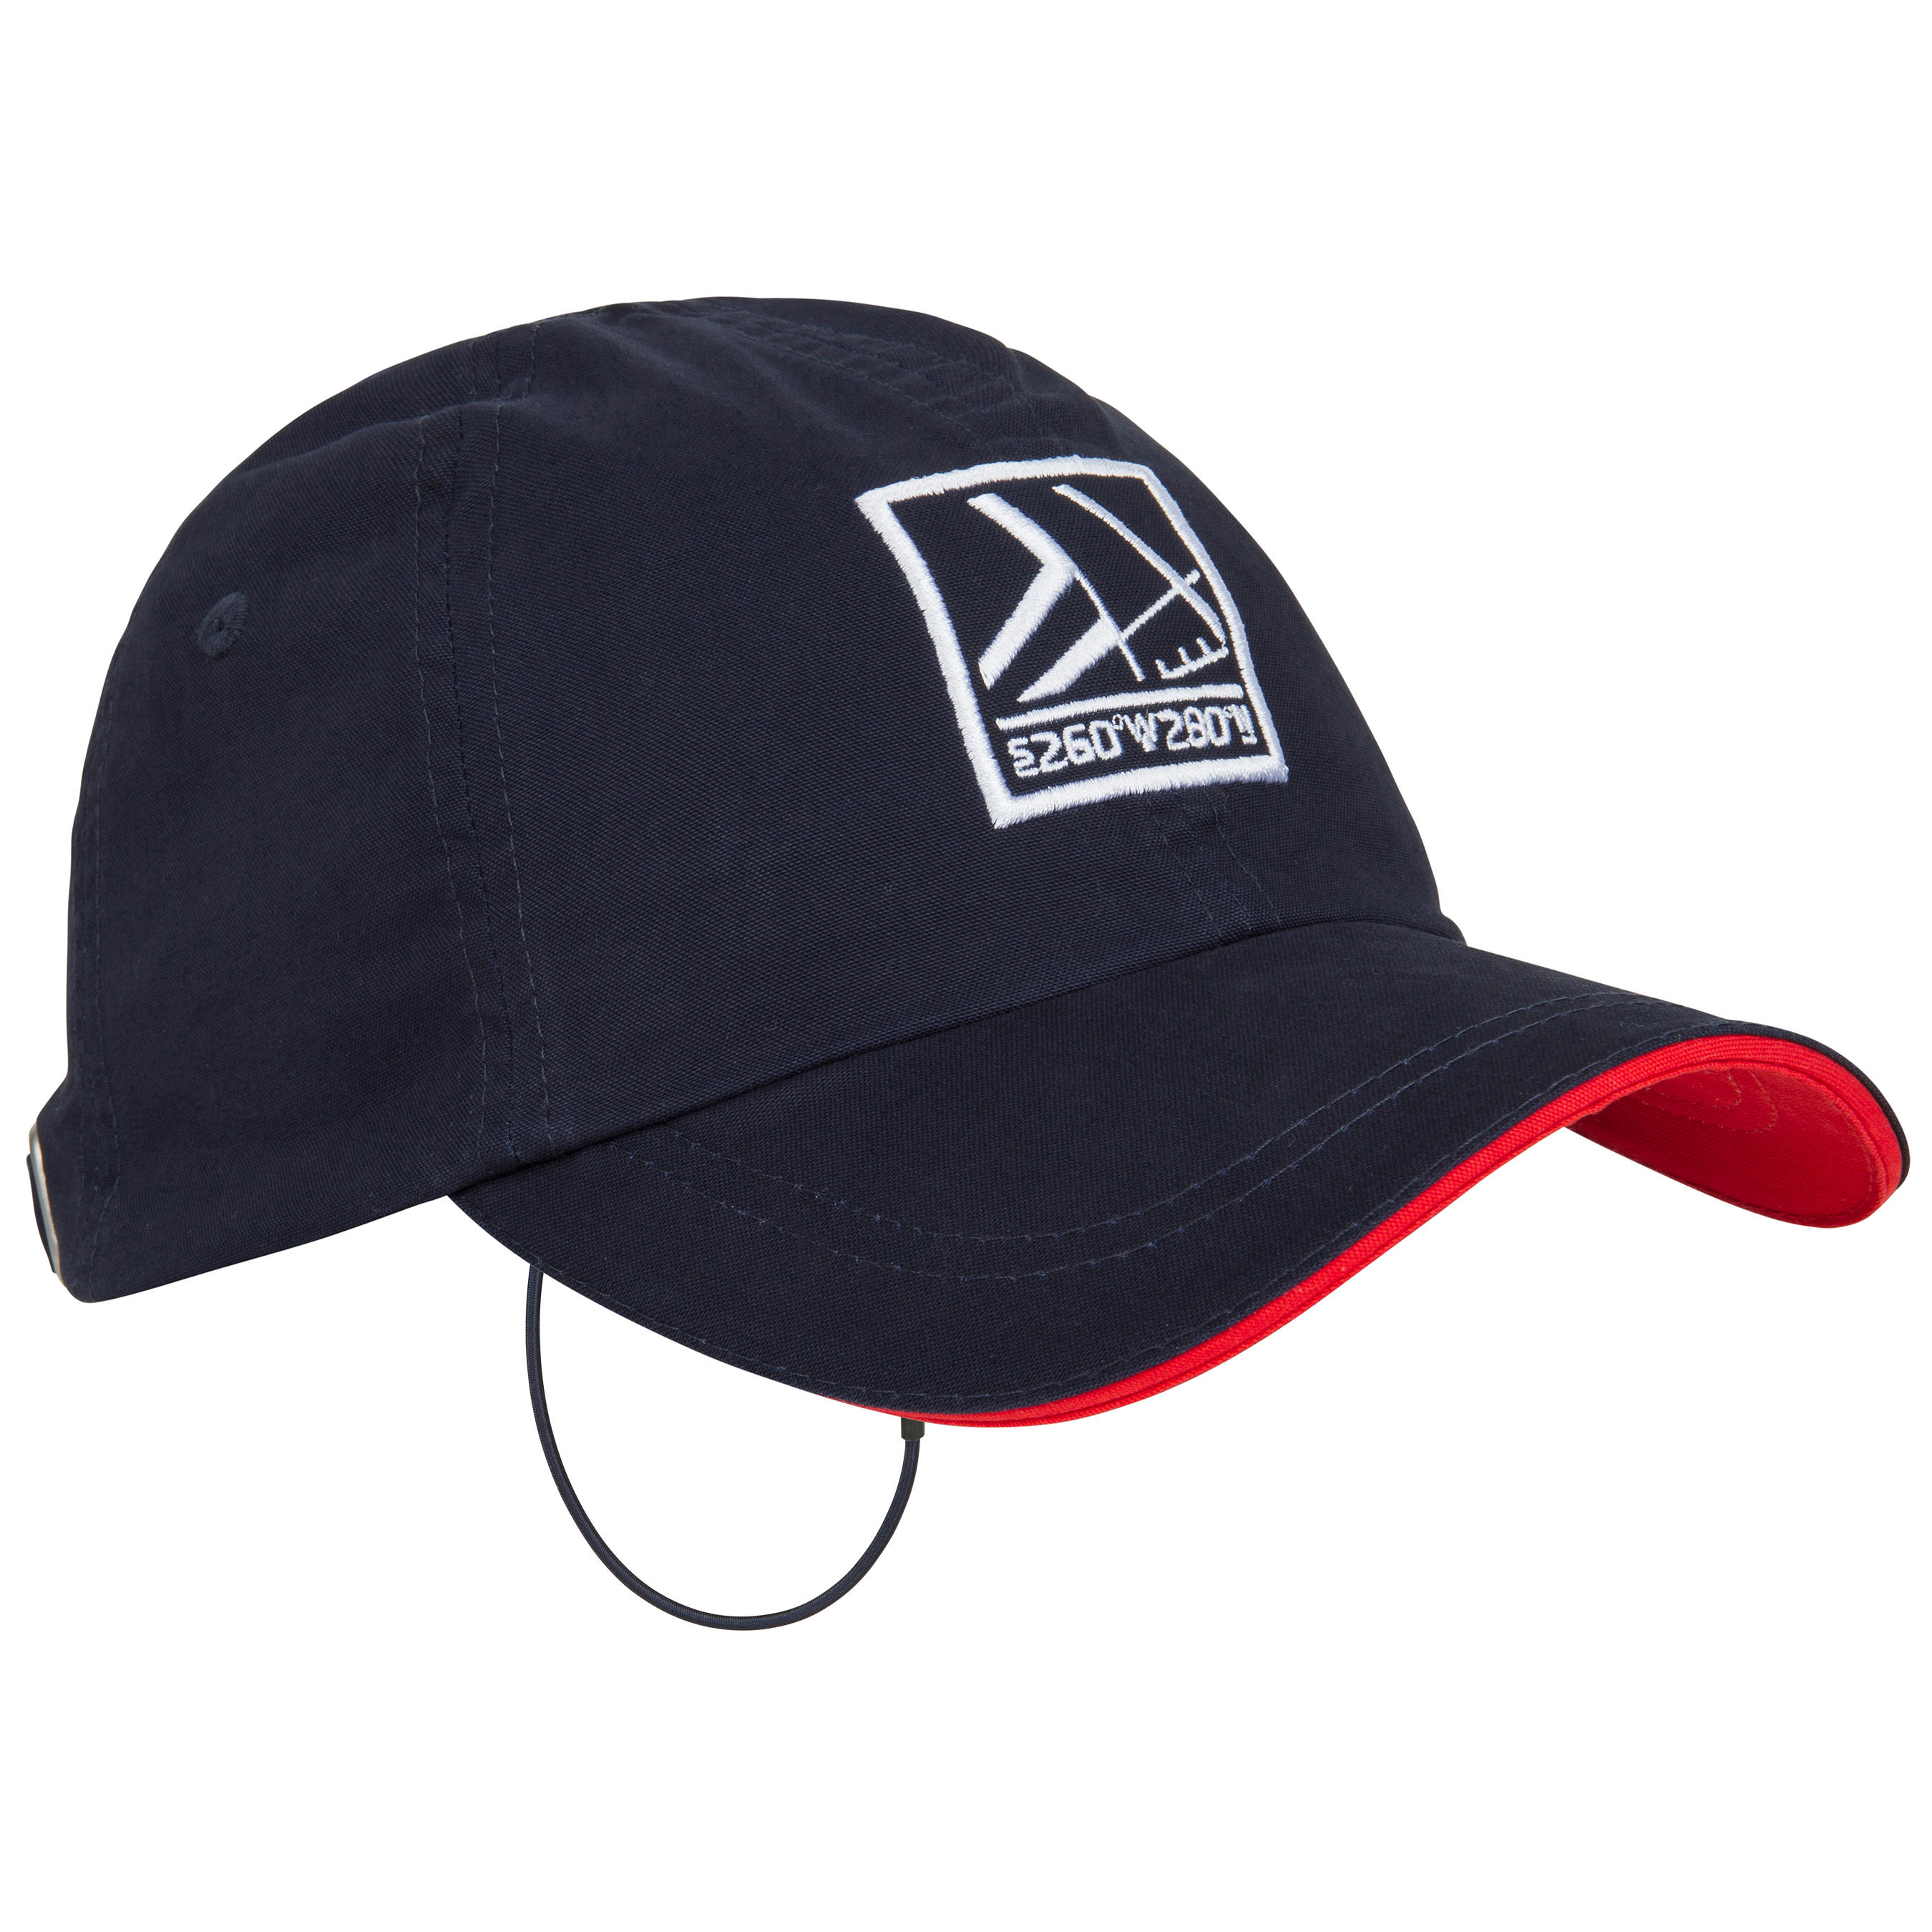 Cotton Adult Sailing Cap - Navy Blue